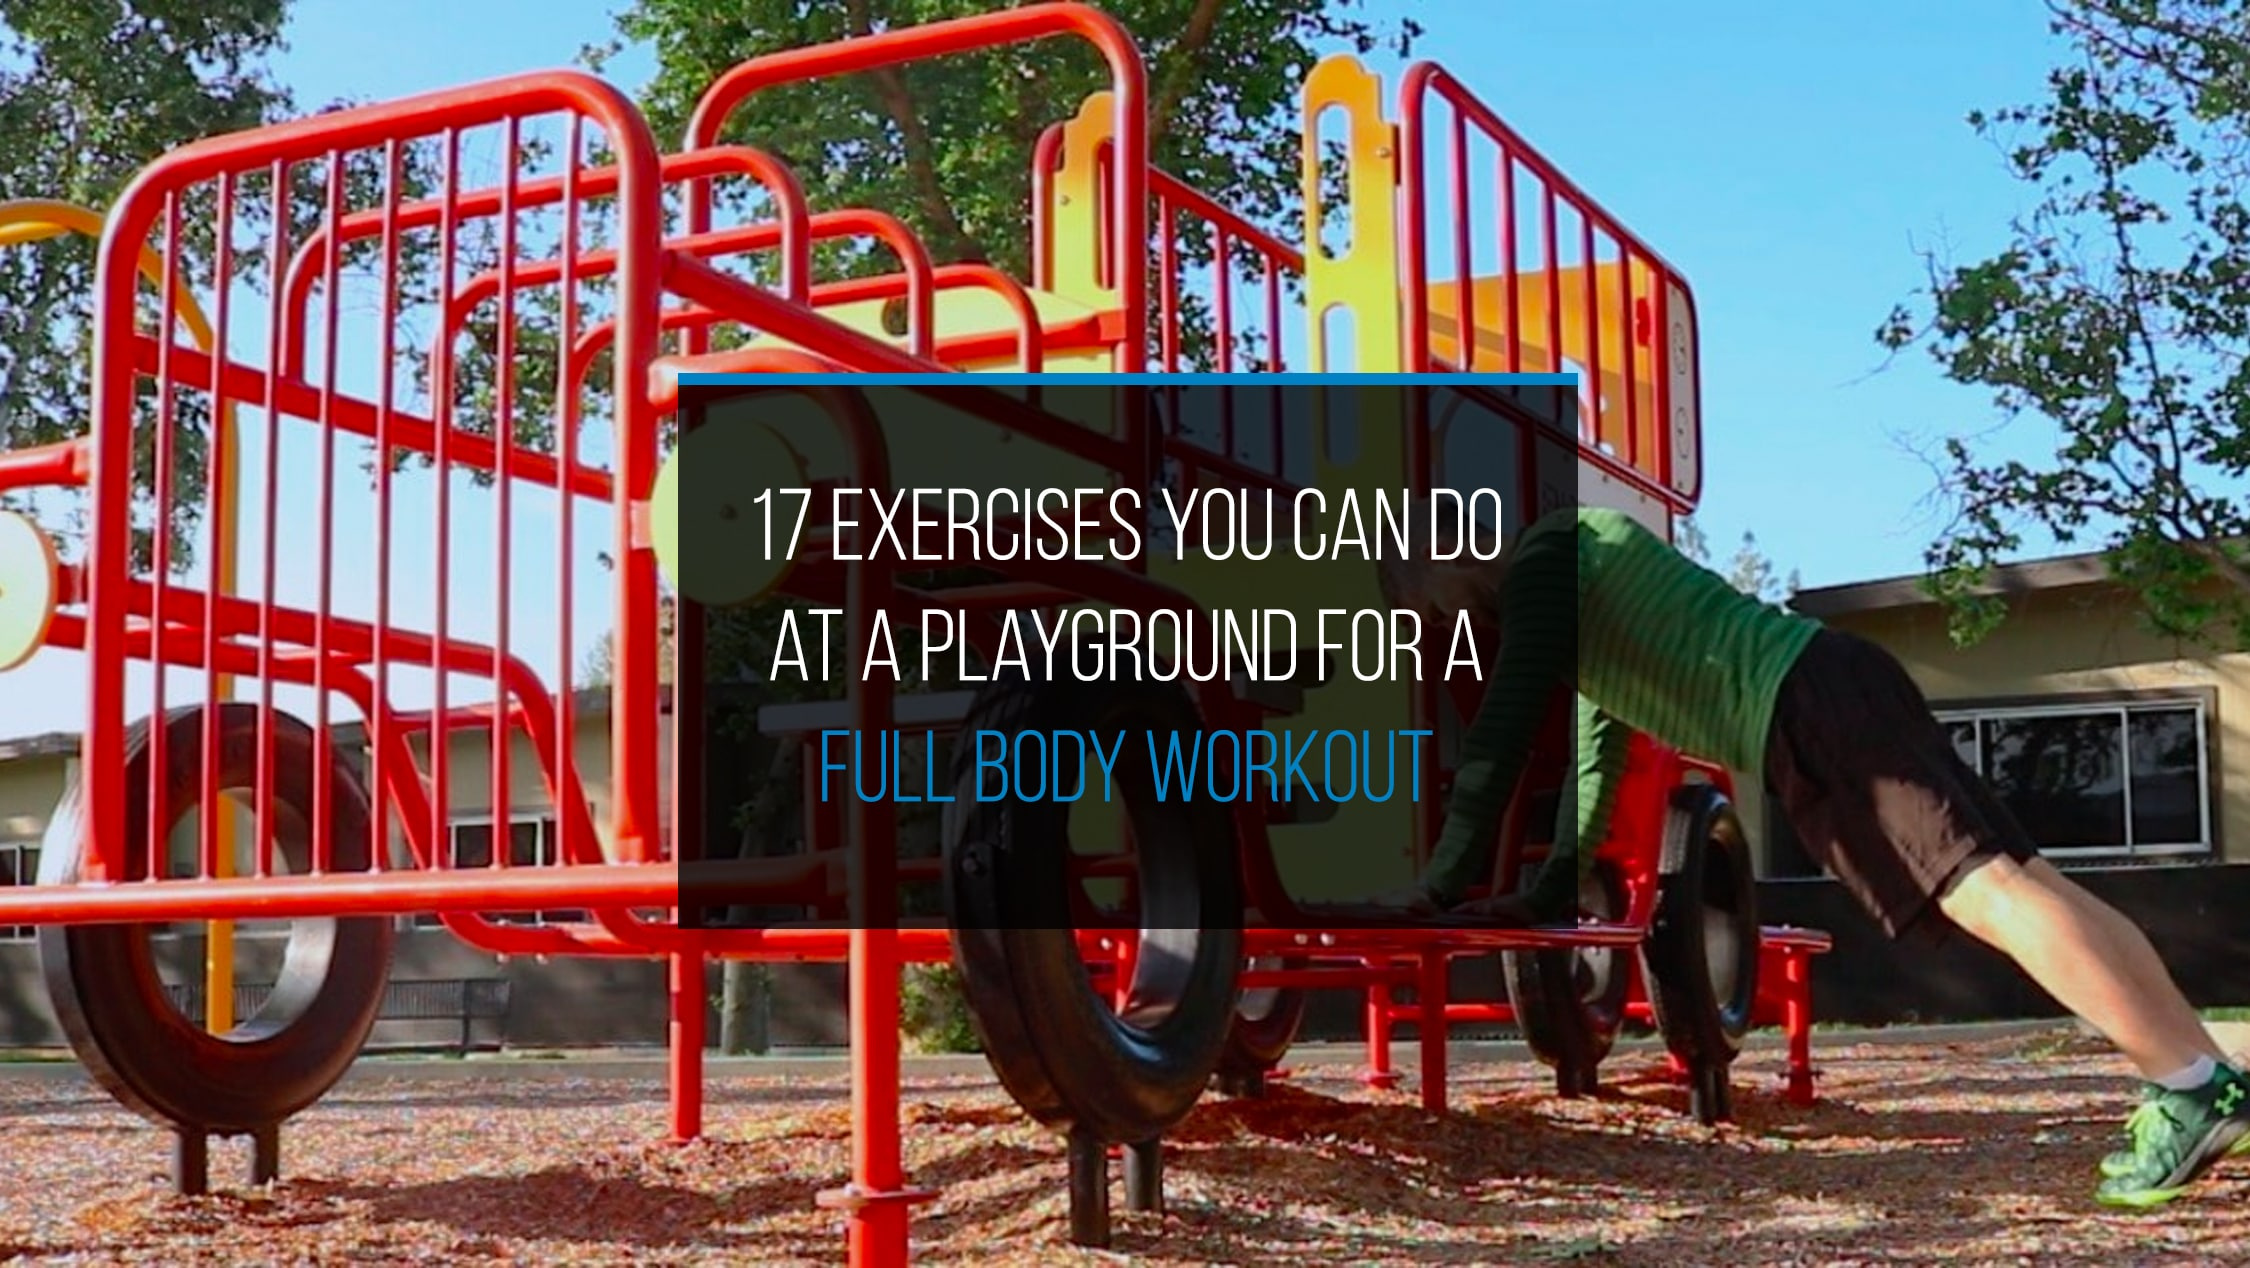 17 Exercises You Can Do at a Playground for a Full Body Workout